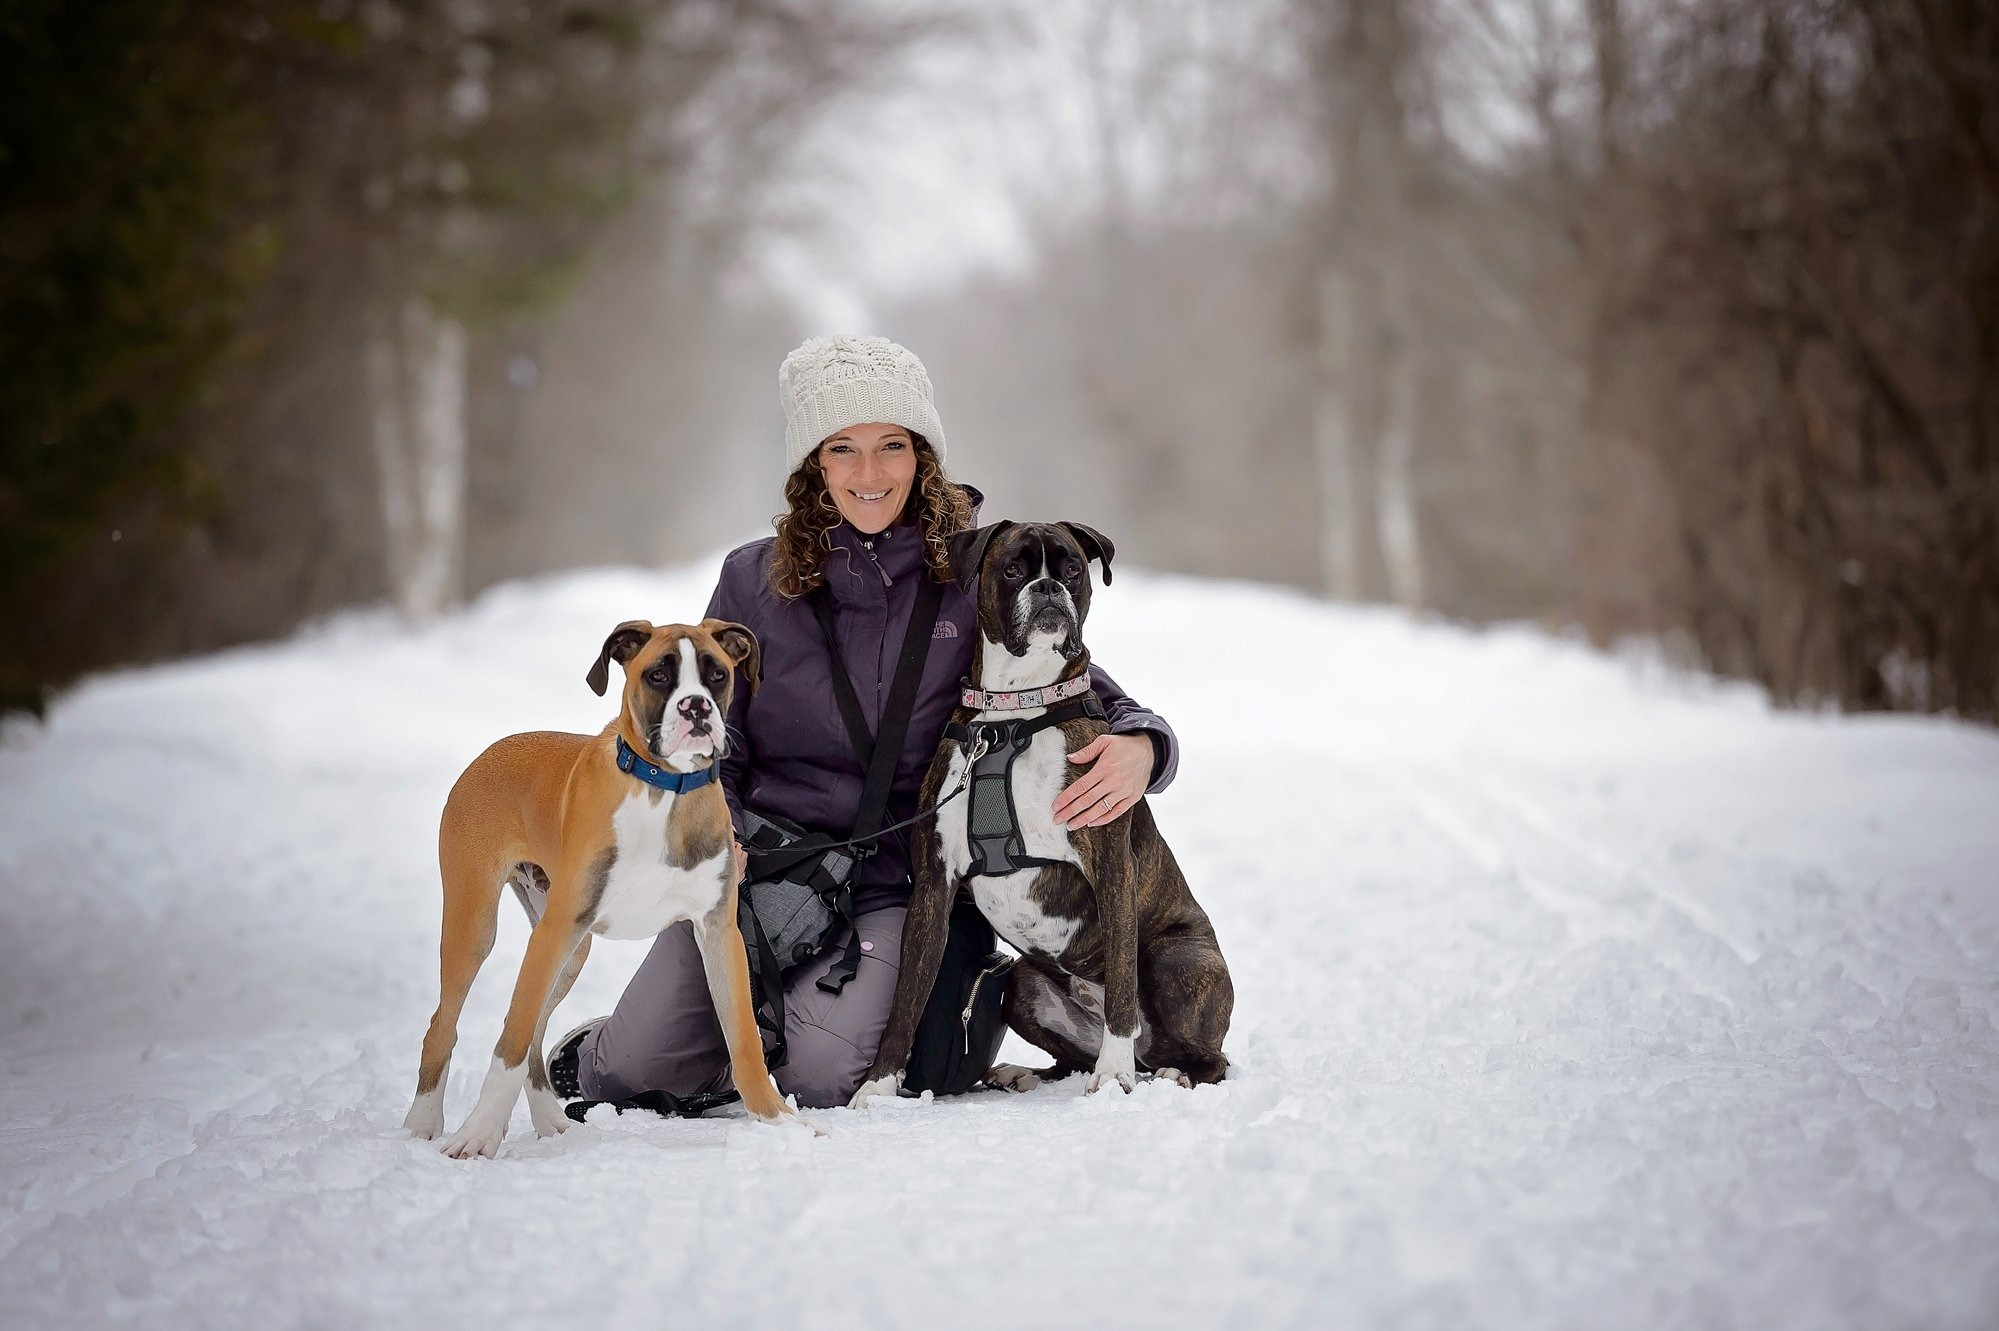 A woman (Nancy) smiles for the camera while hugging two dogs, during a winter walk.